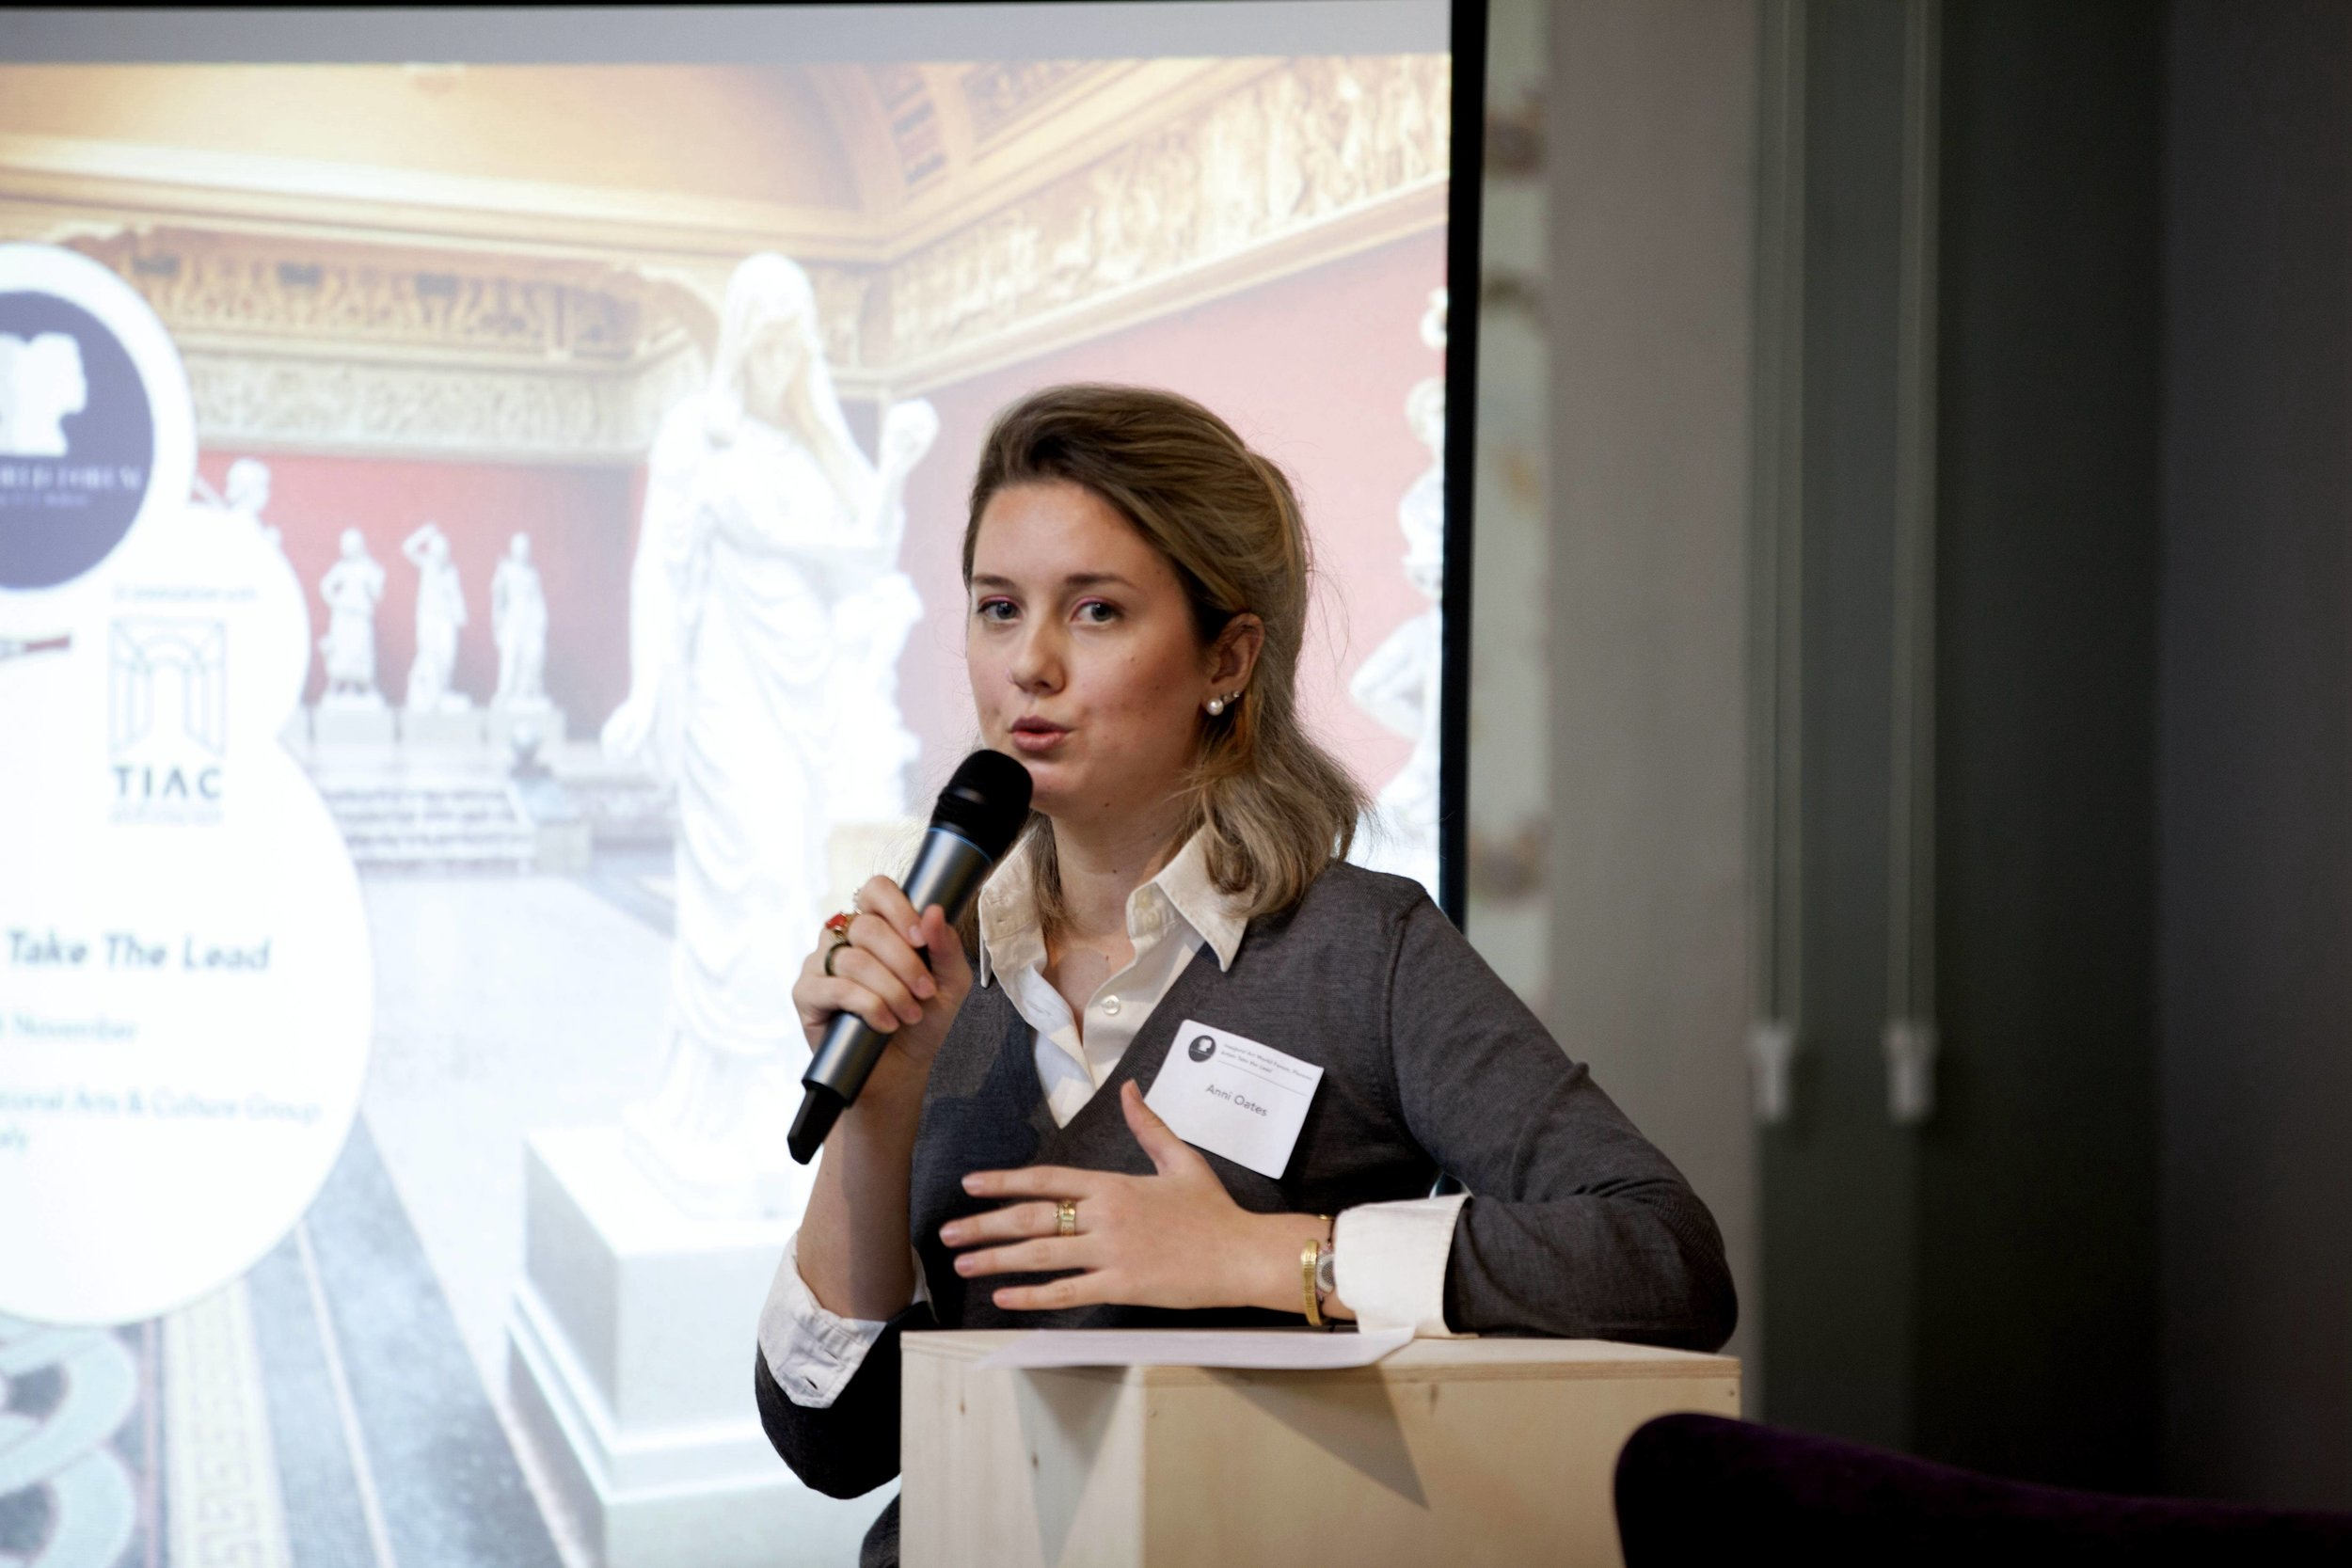 Anni Oates, Co-Founder of Art World Forum